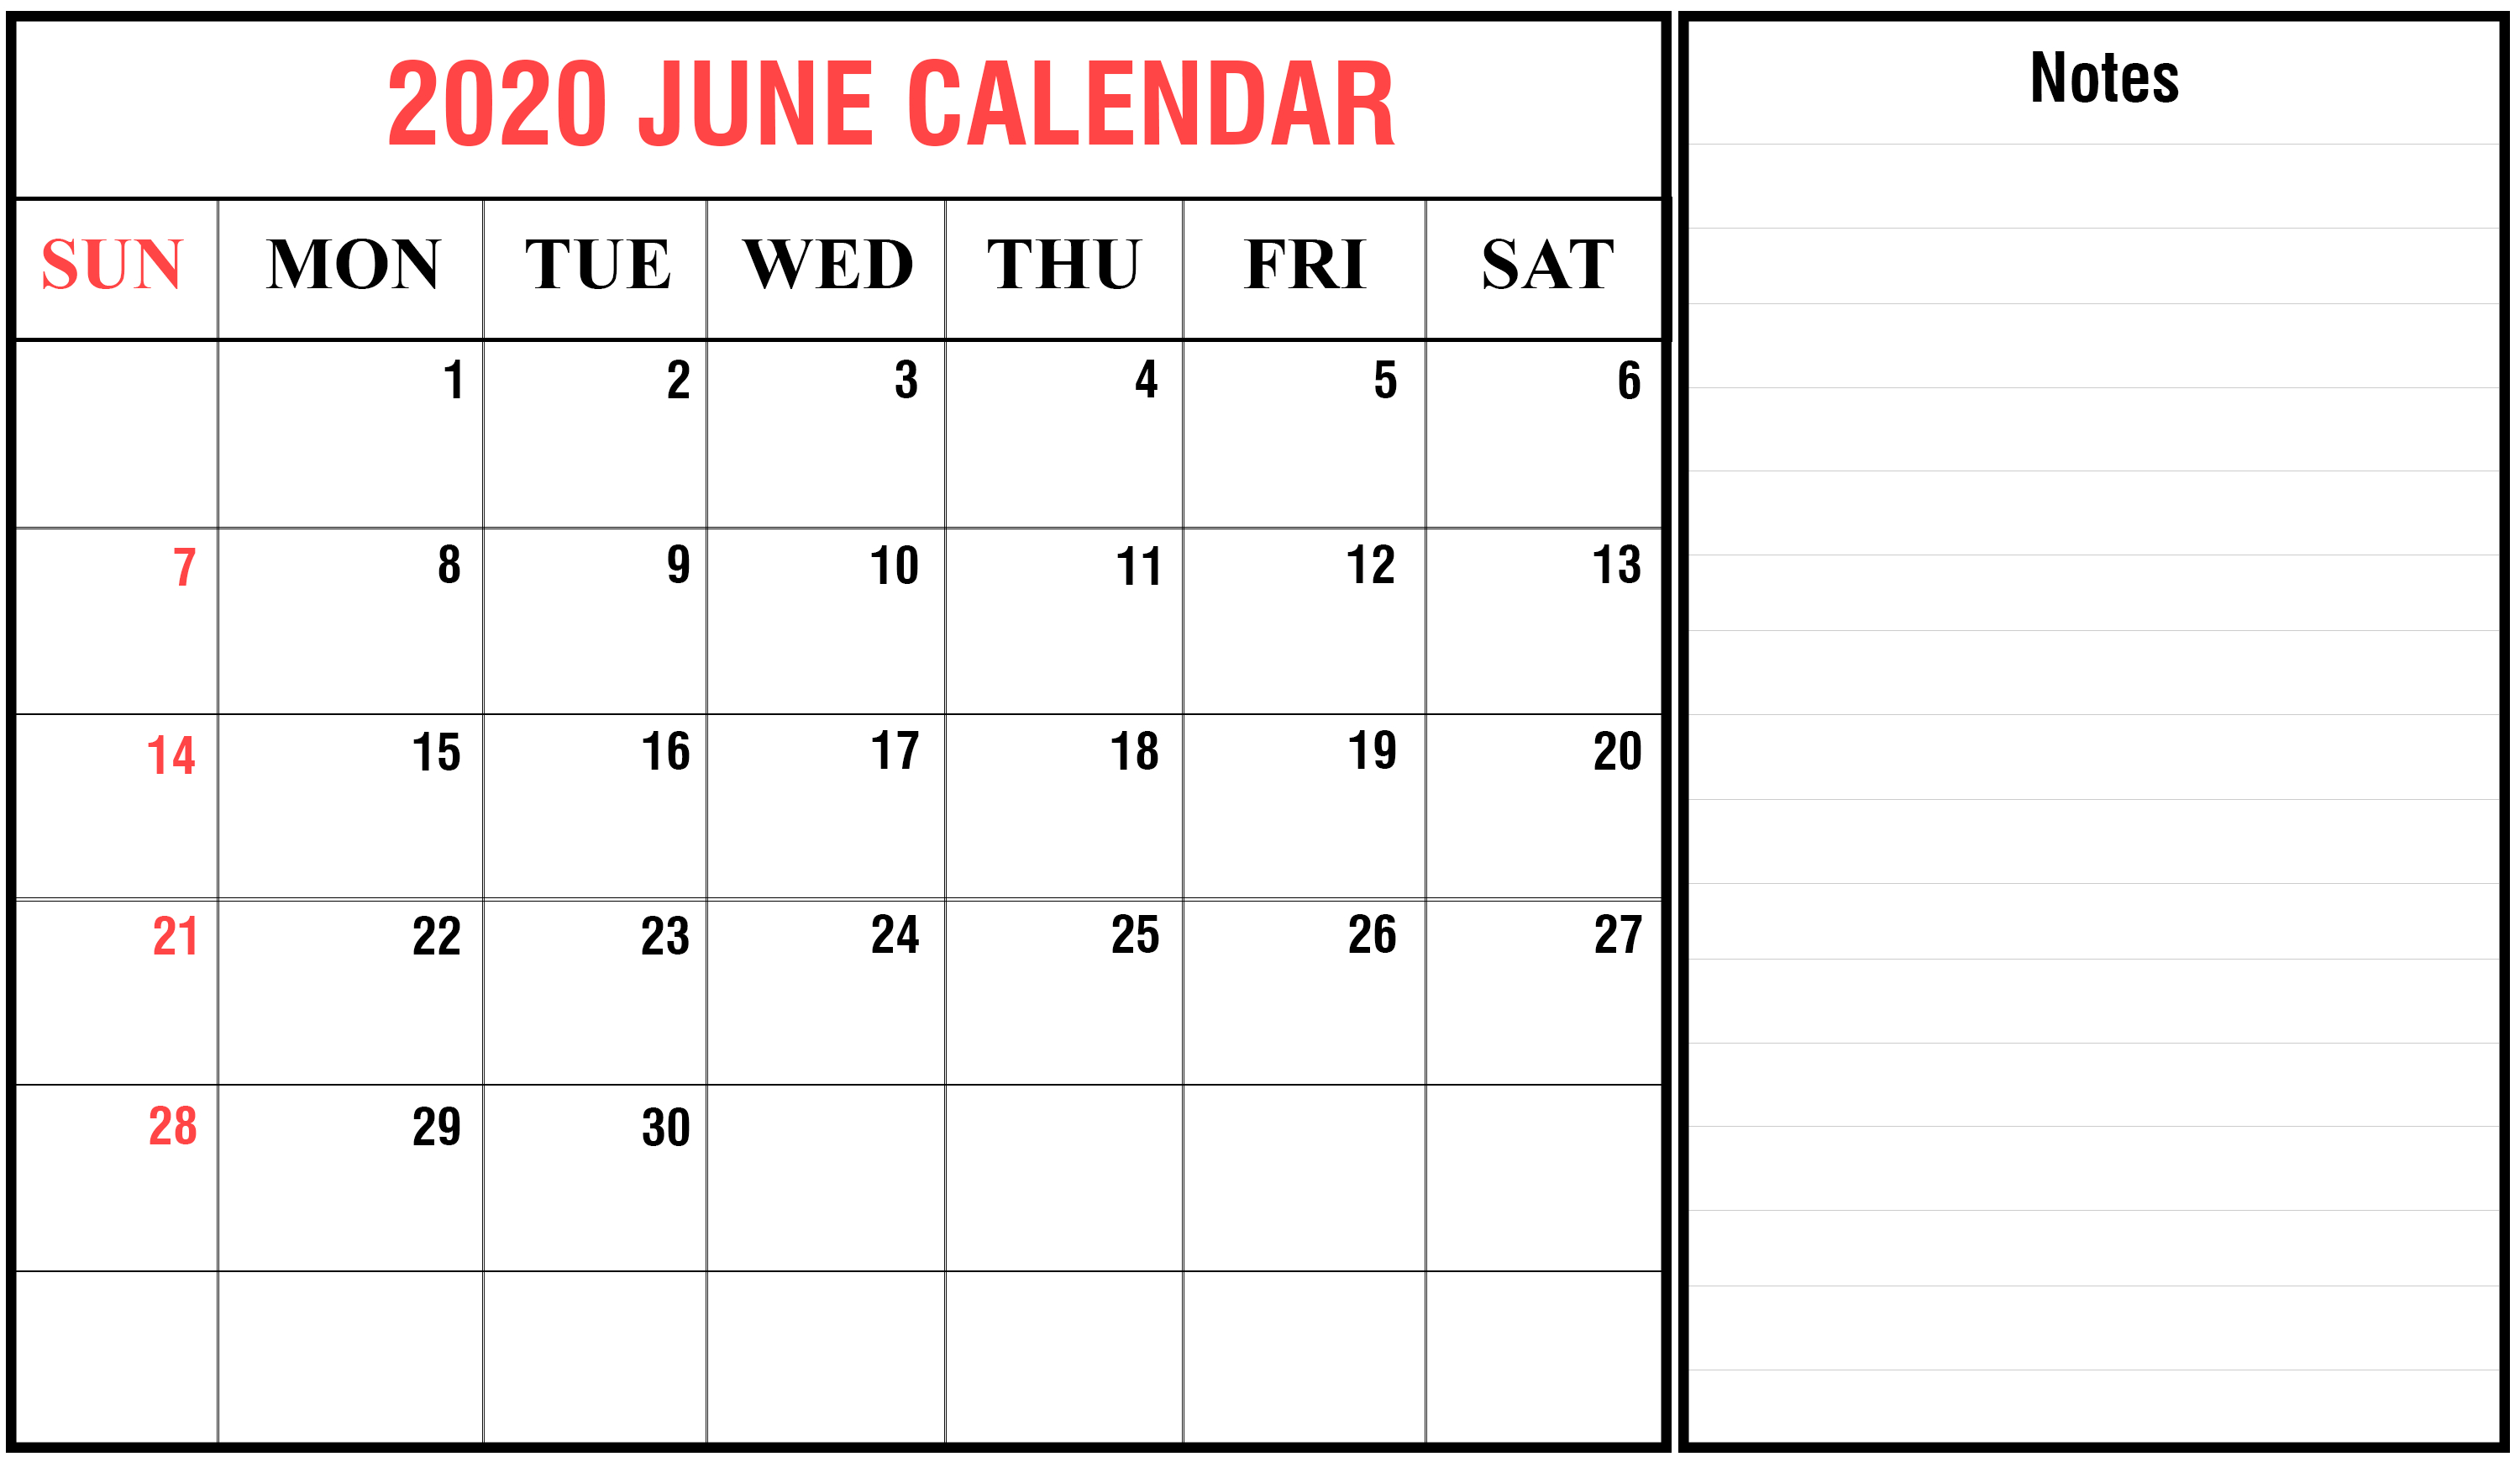 Blank June 2020 Calendar Template | Monthly Calendar intended for 2020 Calendar Hk Excel